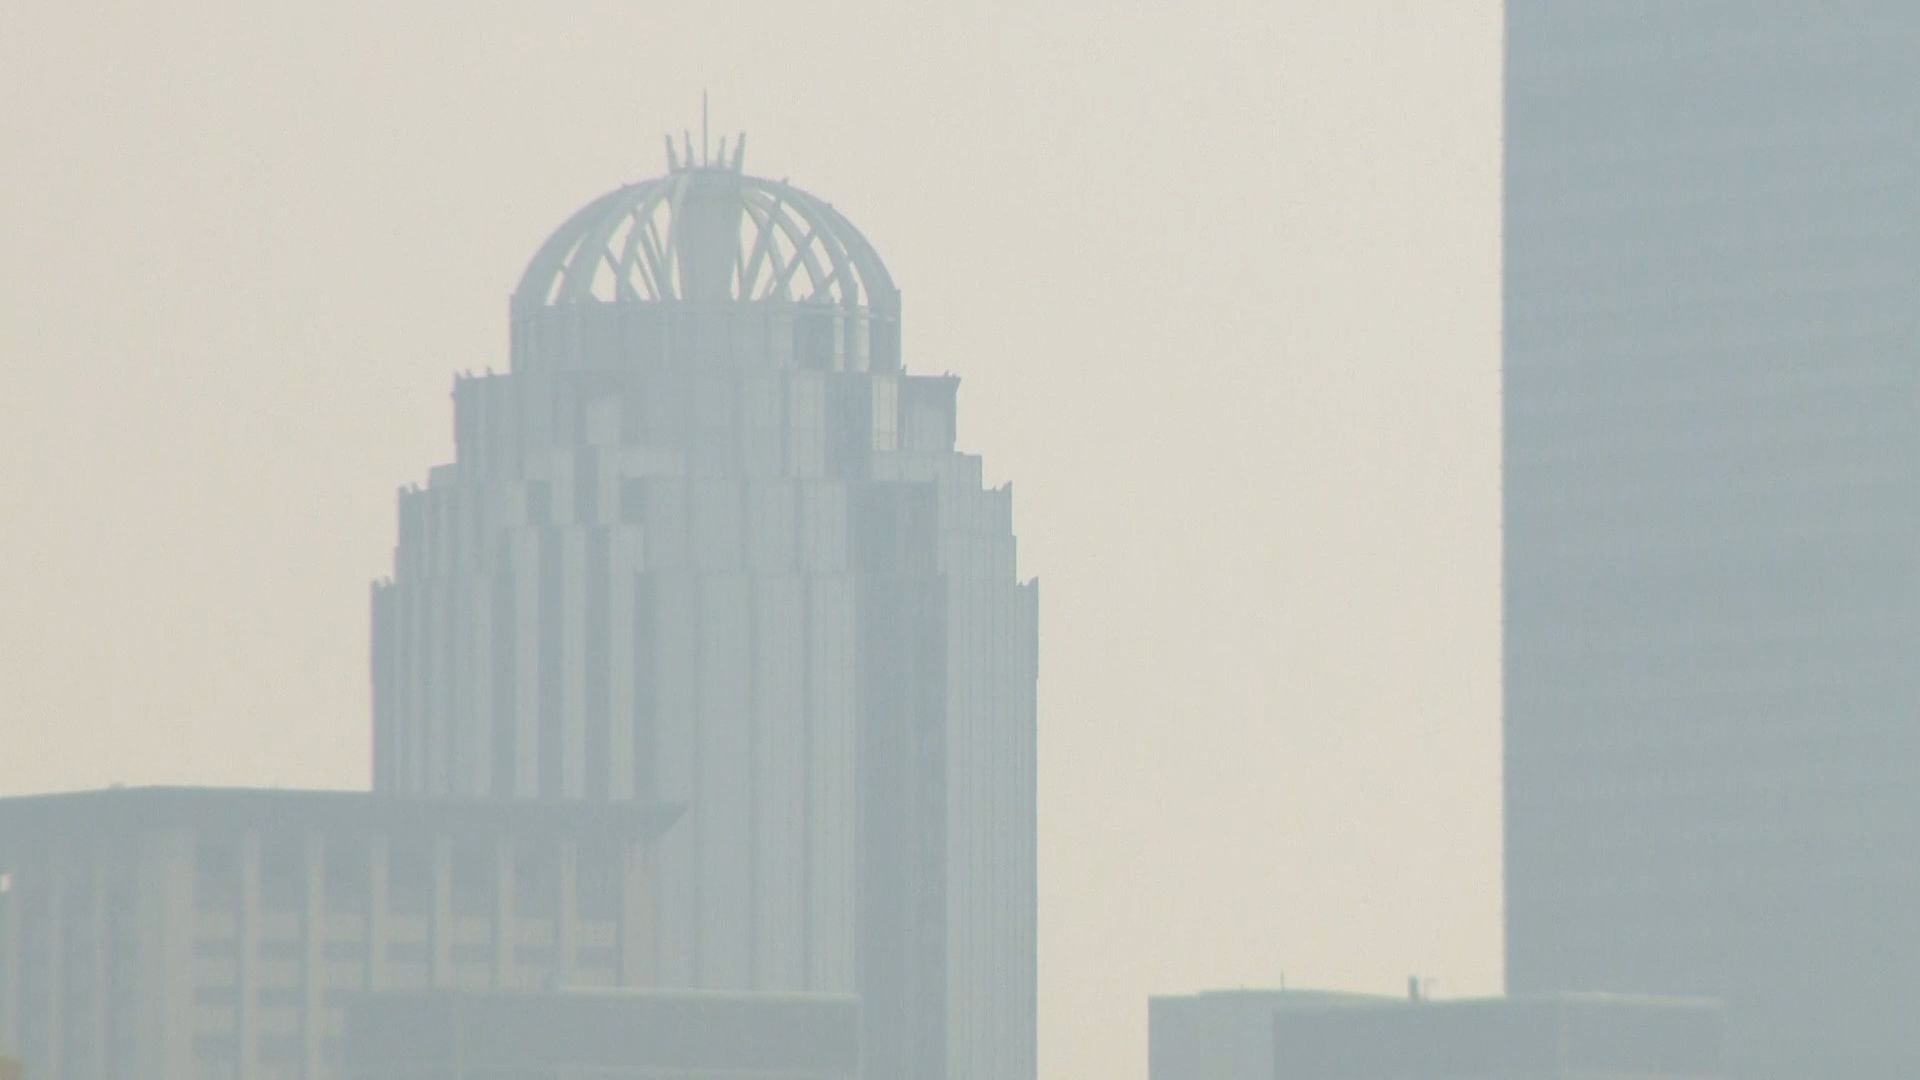 Air quality alert issued for much of Massachusetts due to wildfire smoke from West Coast